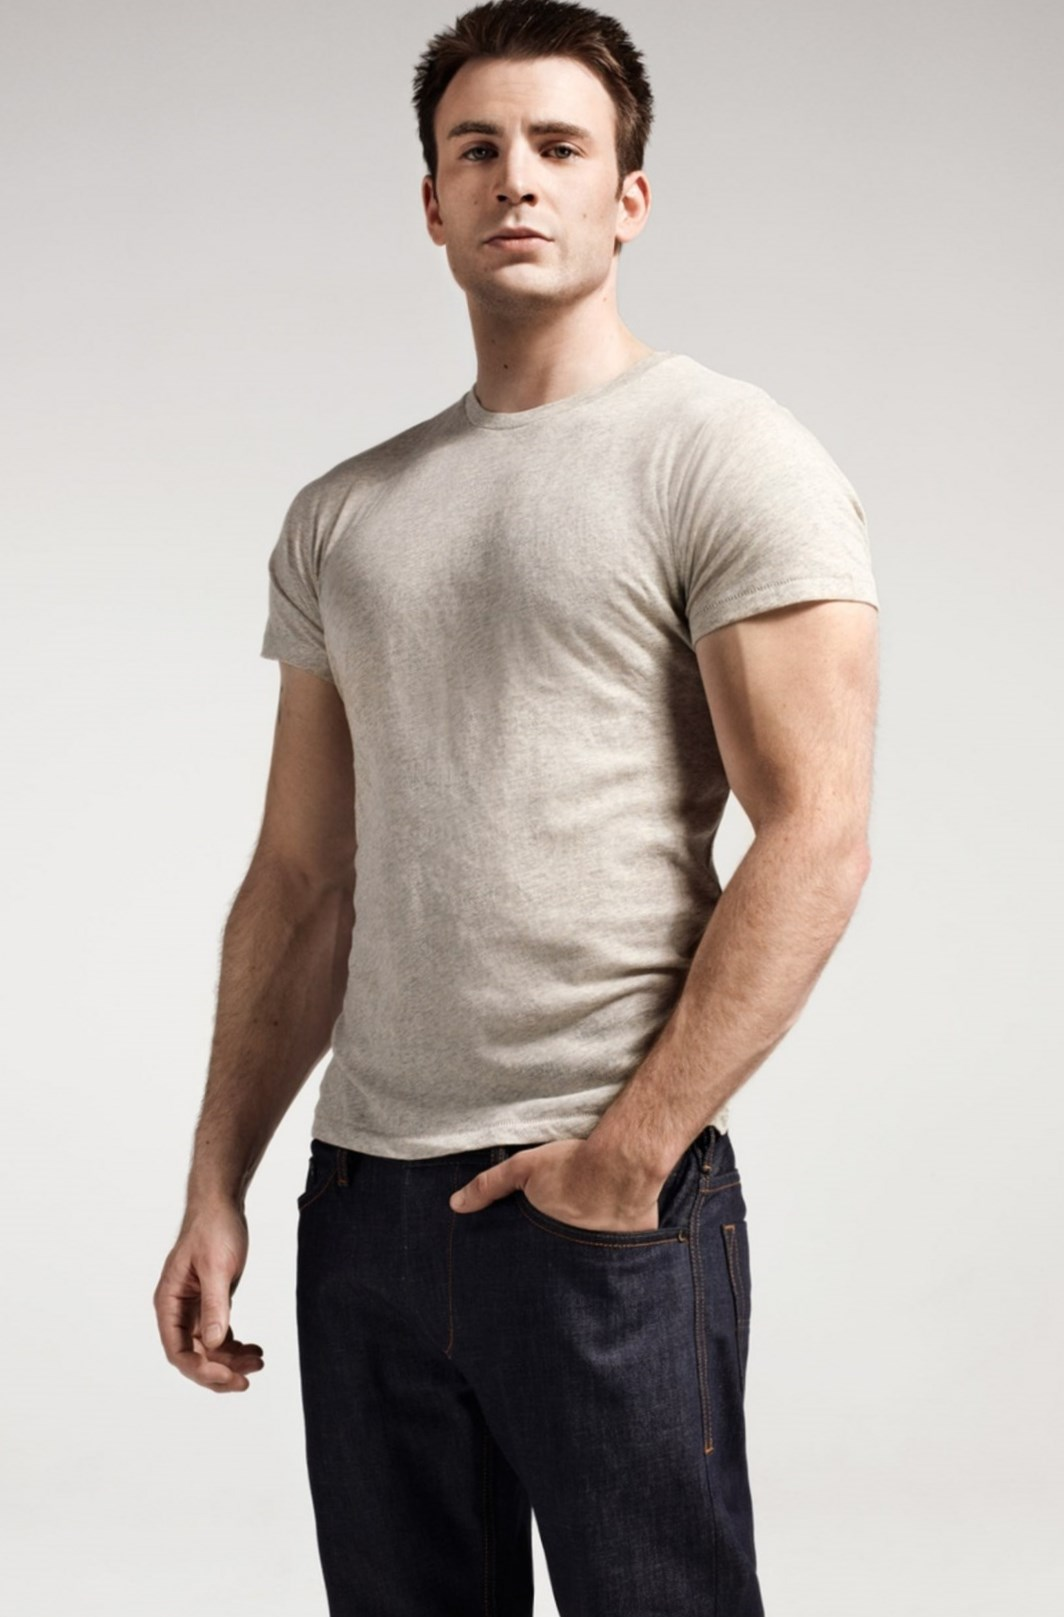 Chris Evans - Height, Weight, Age